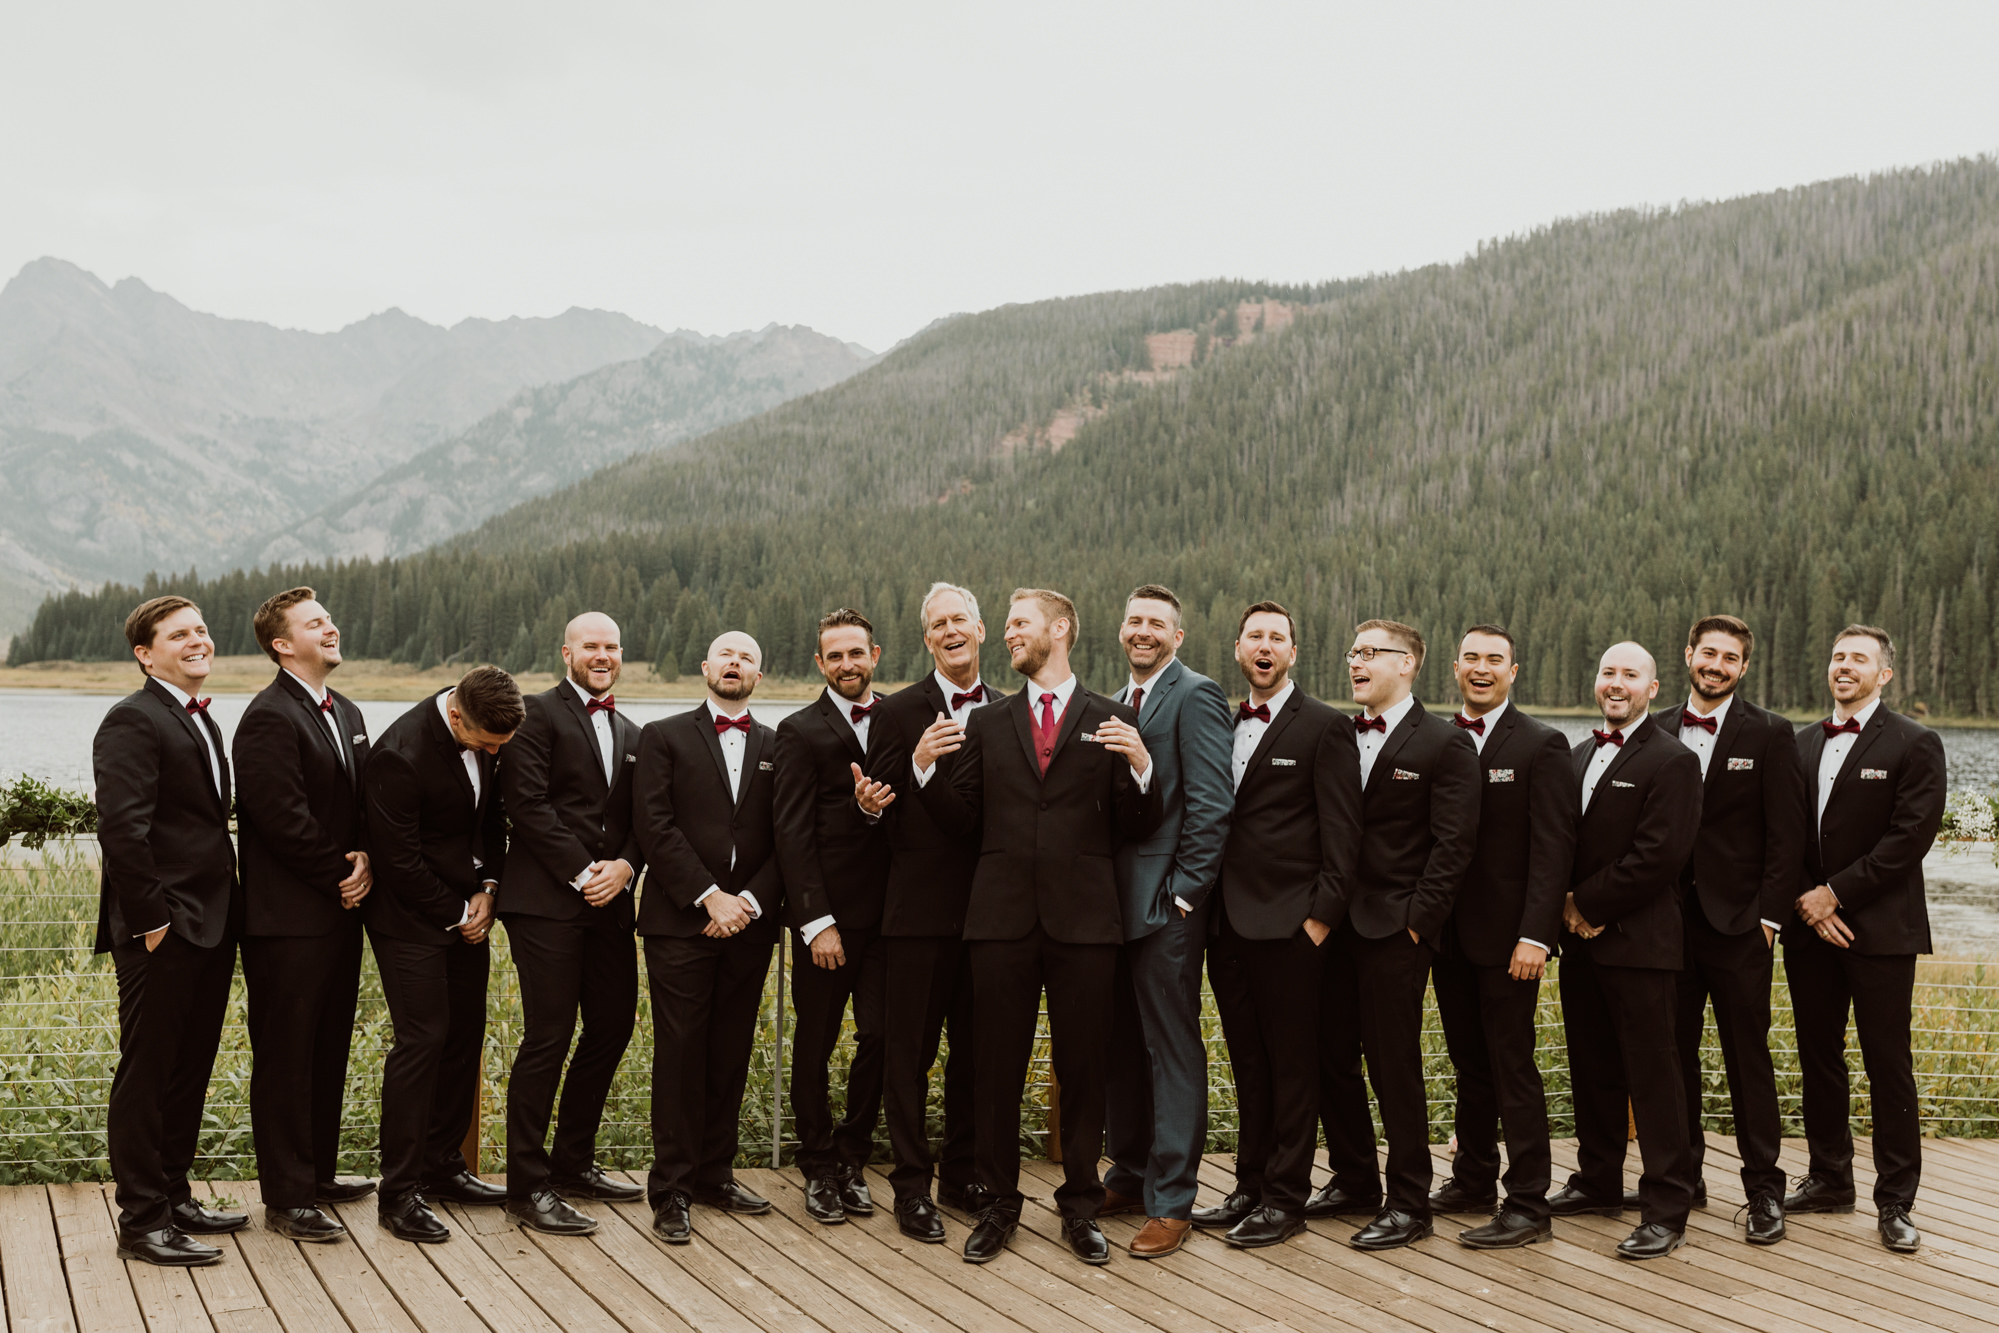 piney-river-ranch-intimate-colorado-wedding-44.jpg